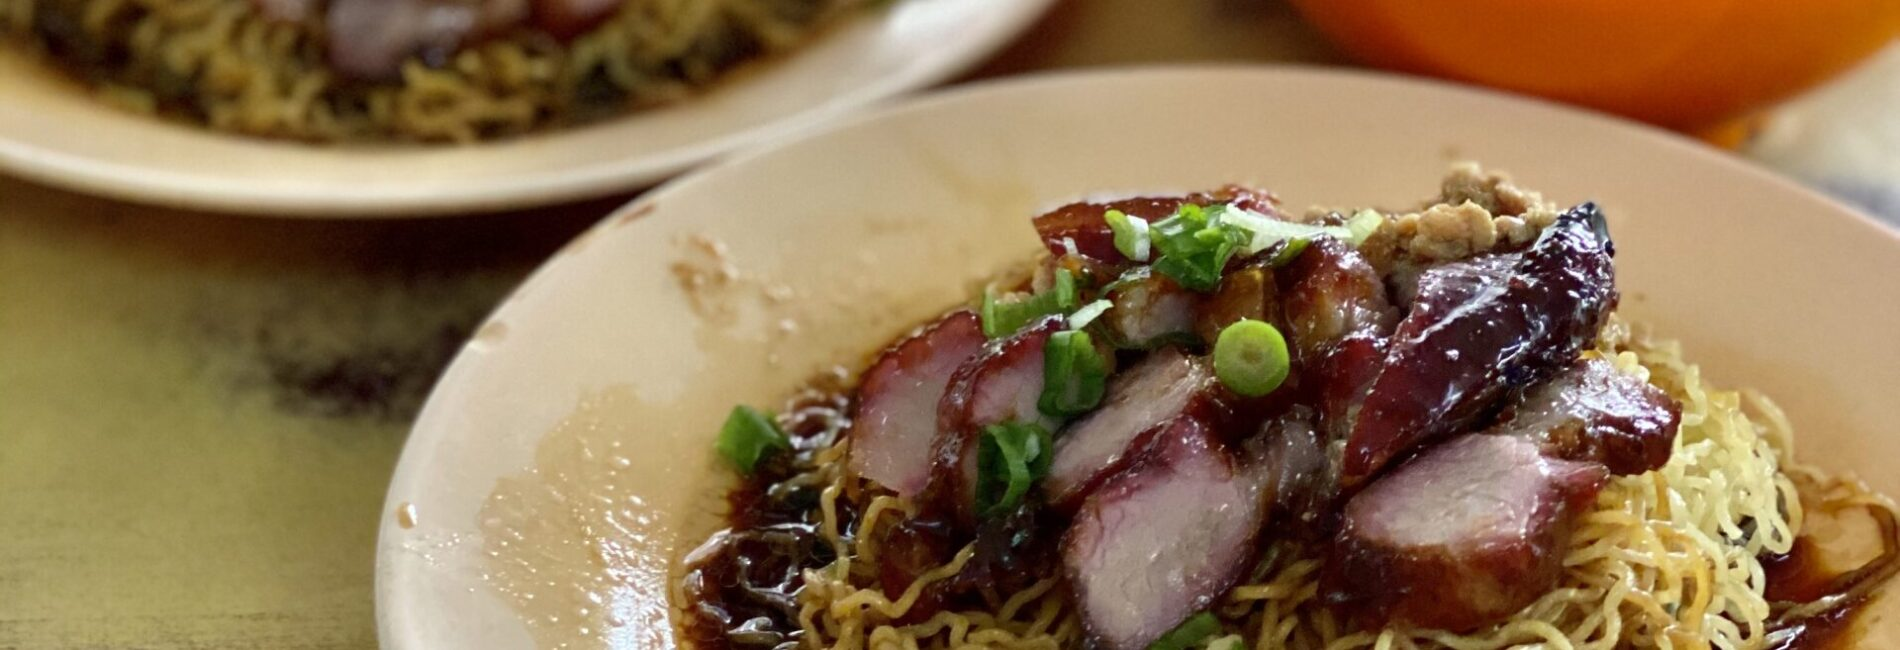 Top Places for Wanton Mee